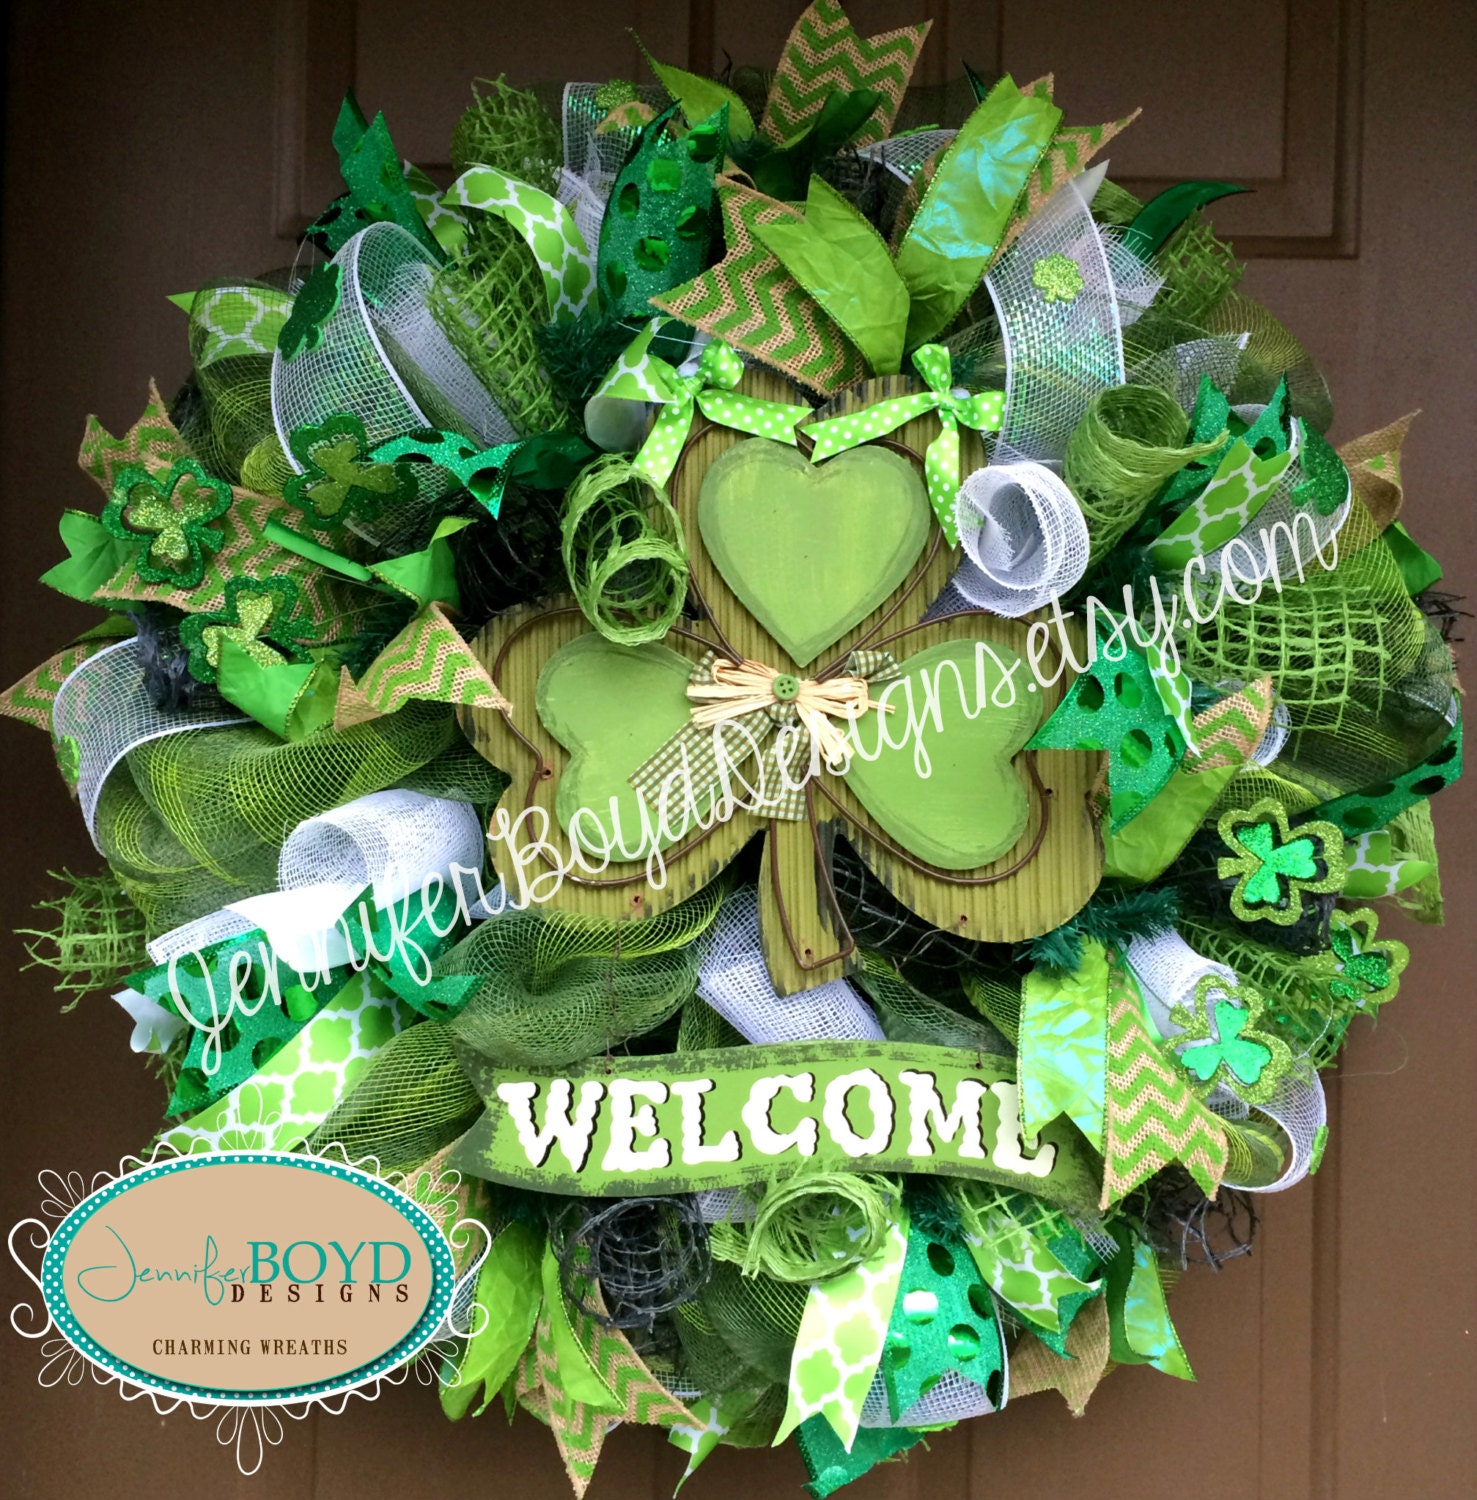 st patrick 39 s day welcome deco mesh wreath april fools. Black Bedroom Furniture Sets. Home Design Ideas